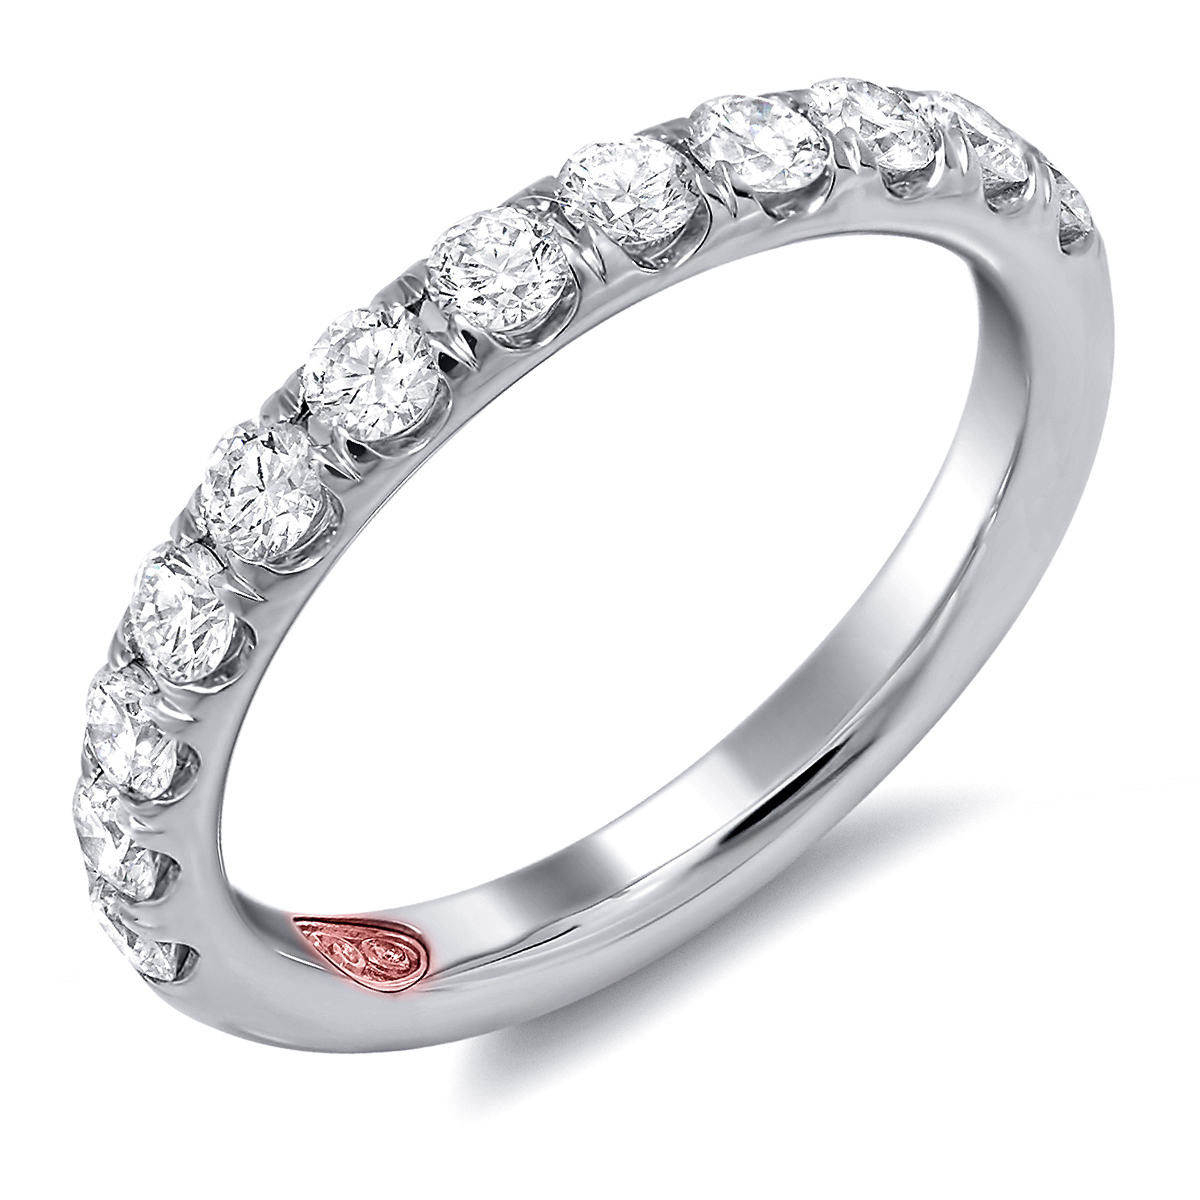 jewelry rings designer engagement jewelry and rings - demarco bridal jewelry hjhmrgg